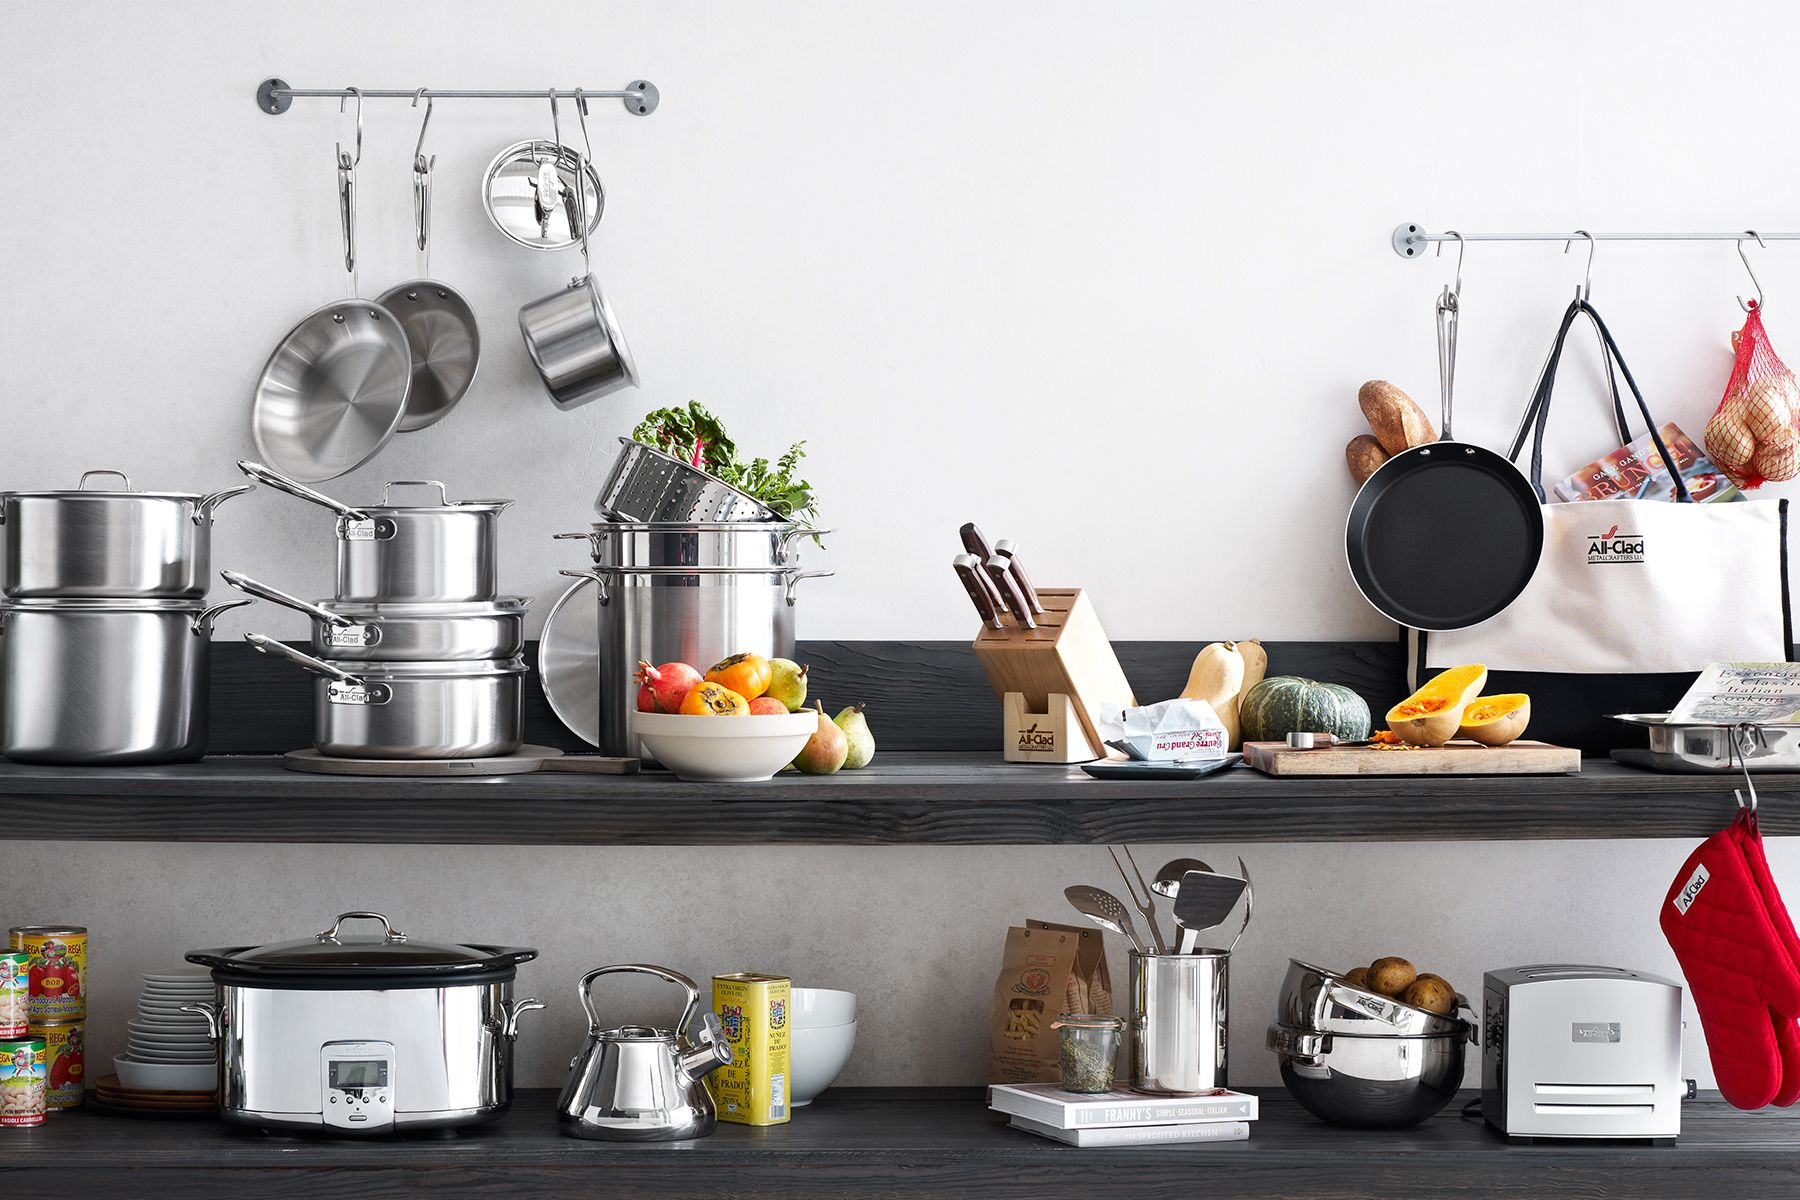 Superior All Clad.Housewares, Kitchen And Homegoods Photography By Greg DuPree  Www.dovisbird.